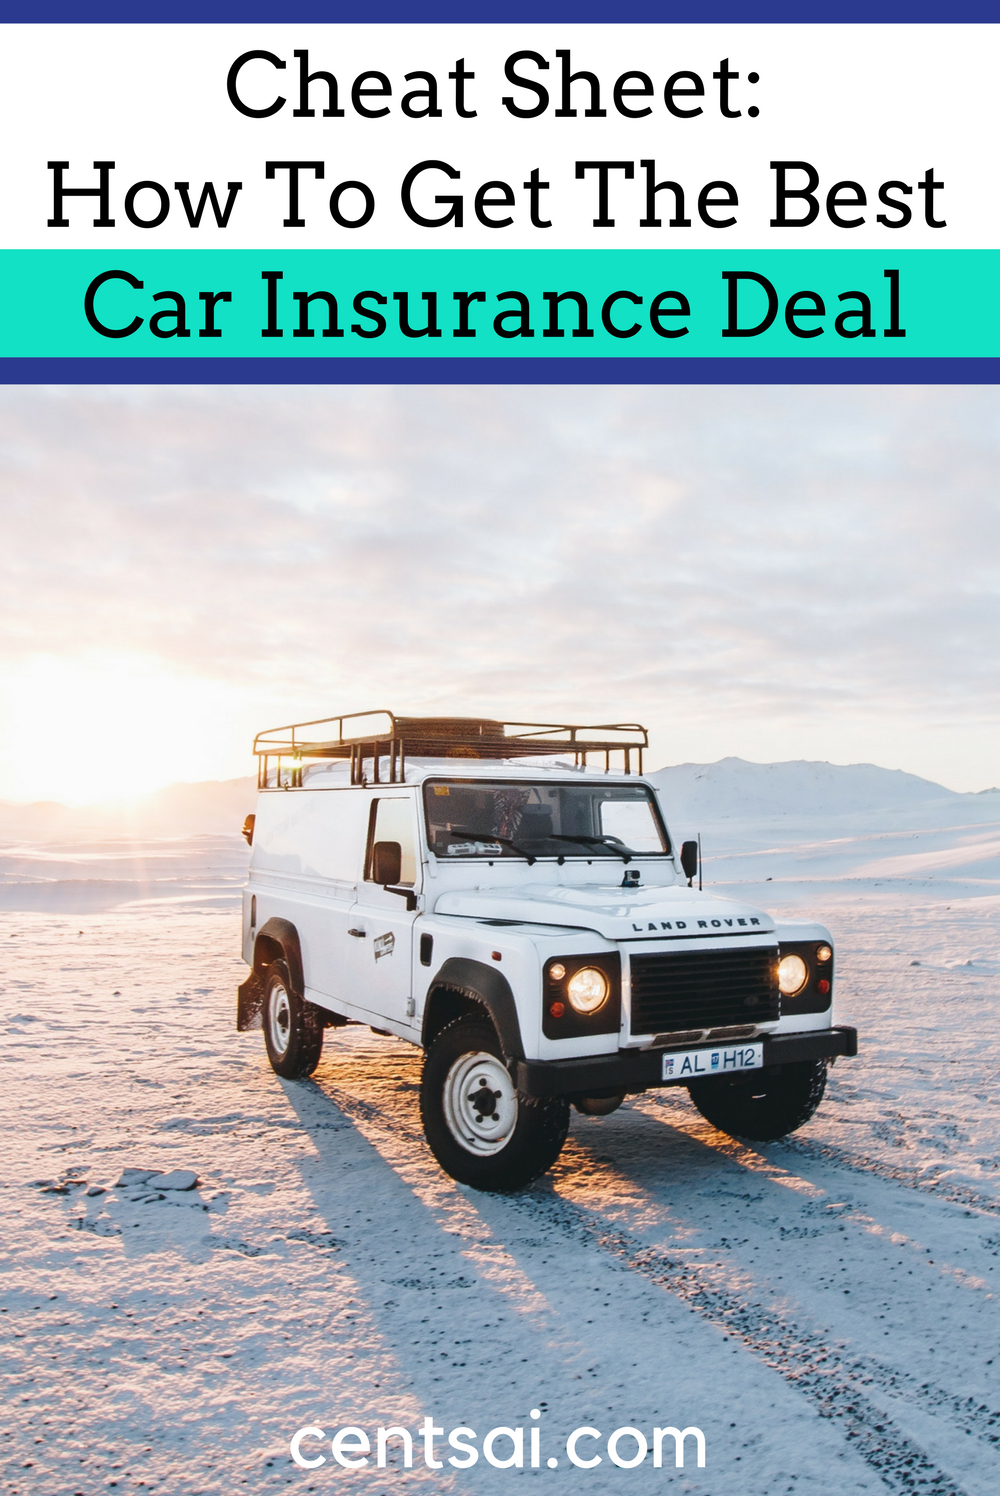 Cheat Sheet How To Get The Best Car Insurance Deal. Who